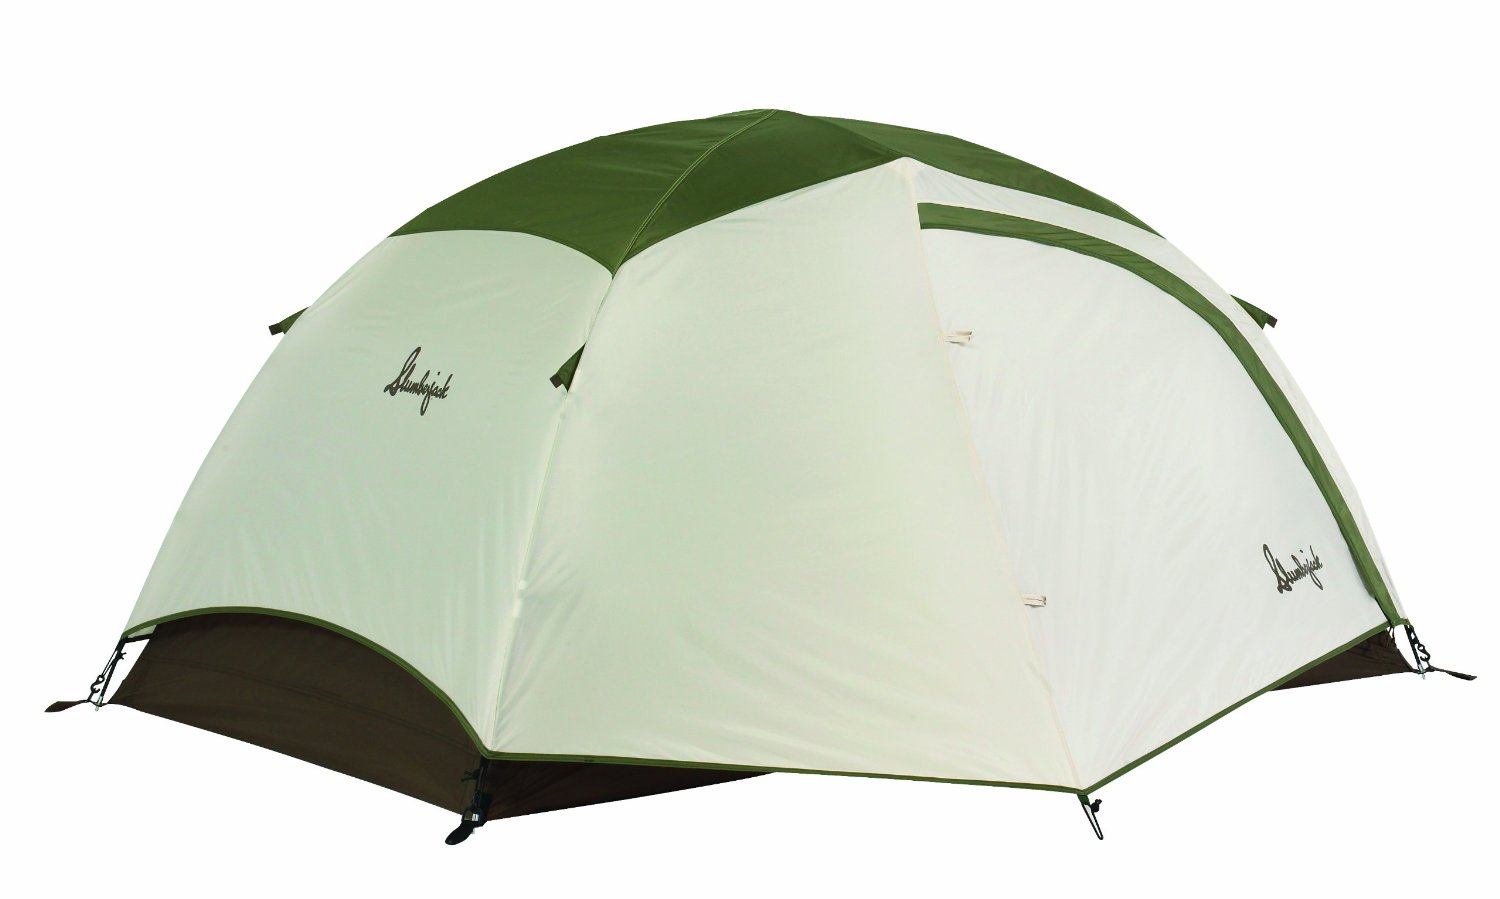 Ultralight Backpacking Tent u2013 Slumberjack 2 Person Trail Tent. Top 10 Best Backpacking Tents  sc 1 st  Her Style Code : best value 4 man tent - memphite.com